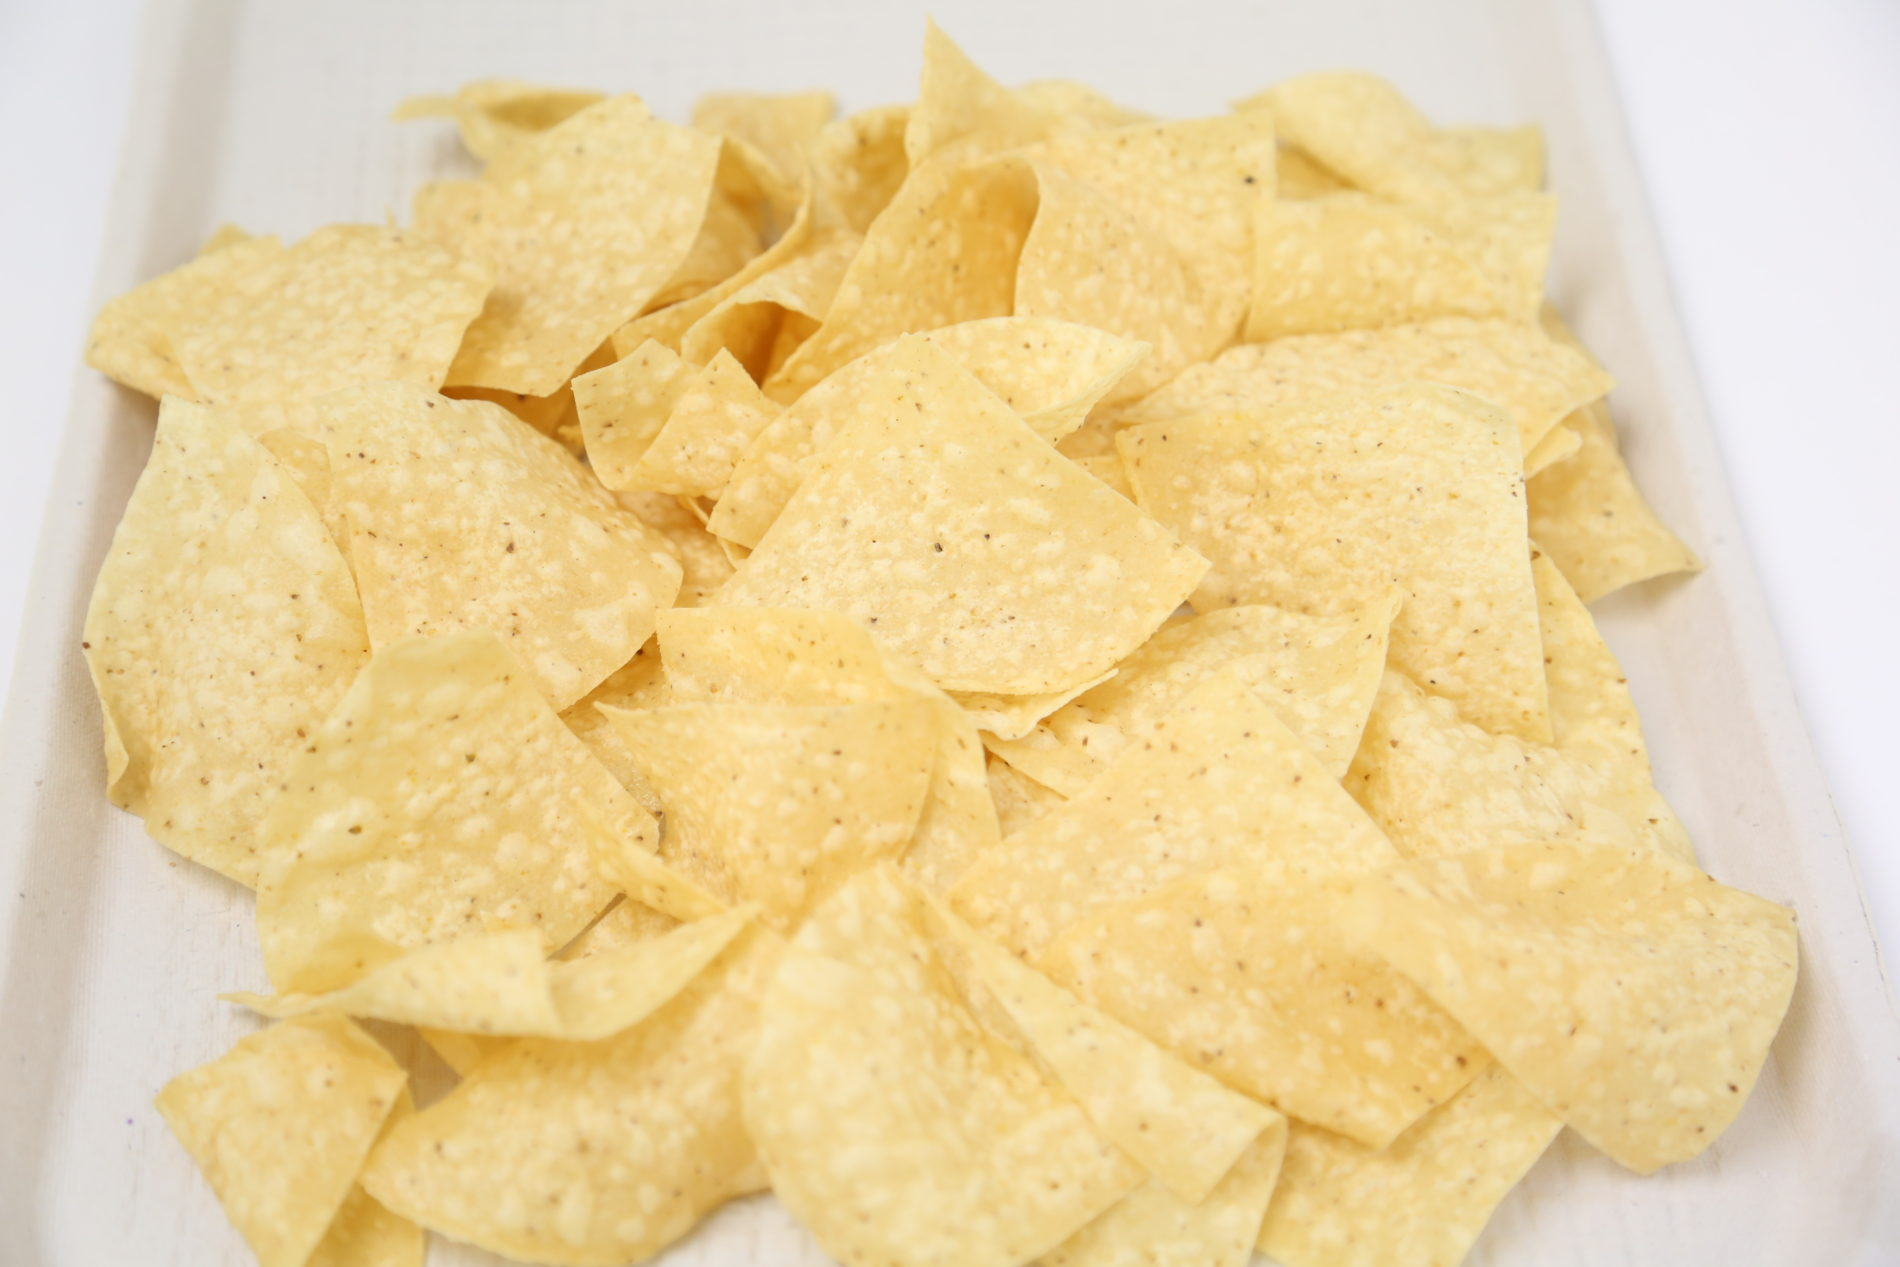 Rudy's White Triangle Rest-Style Chips 5/2lbs